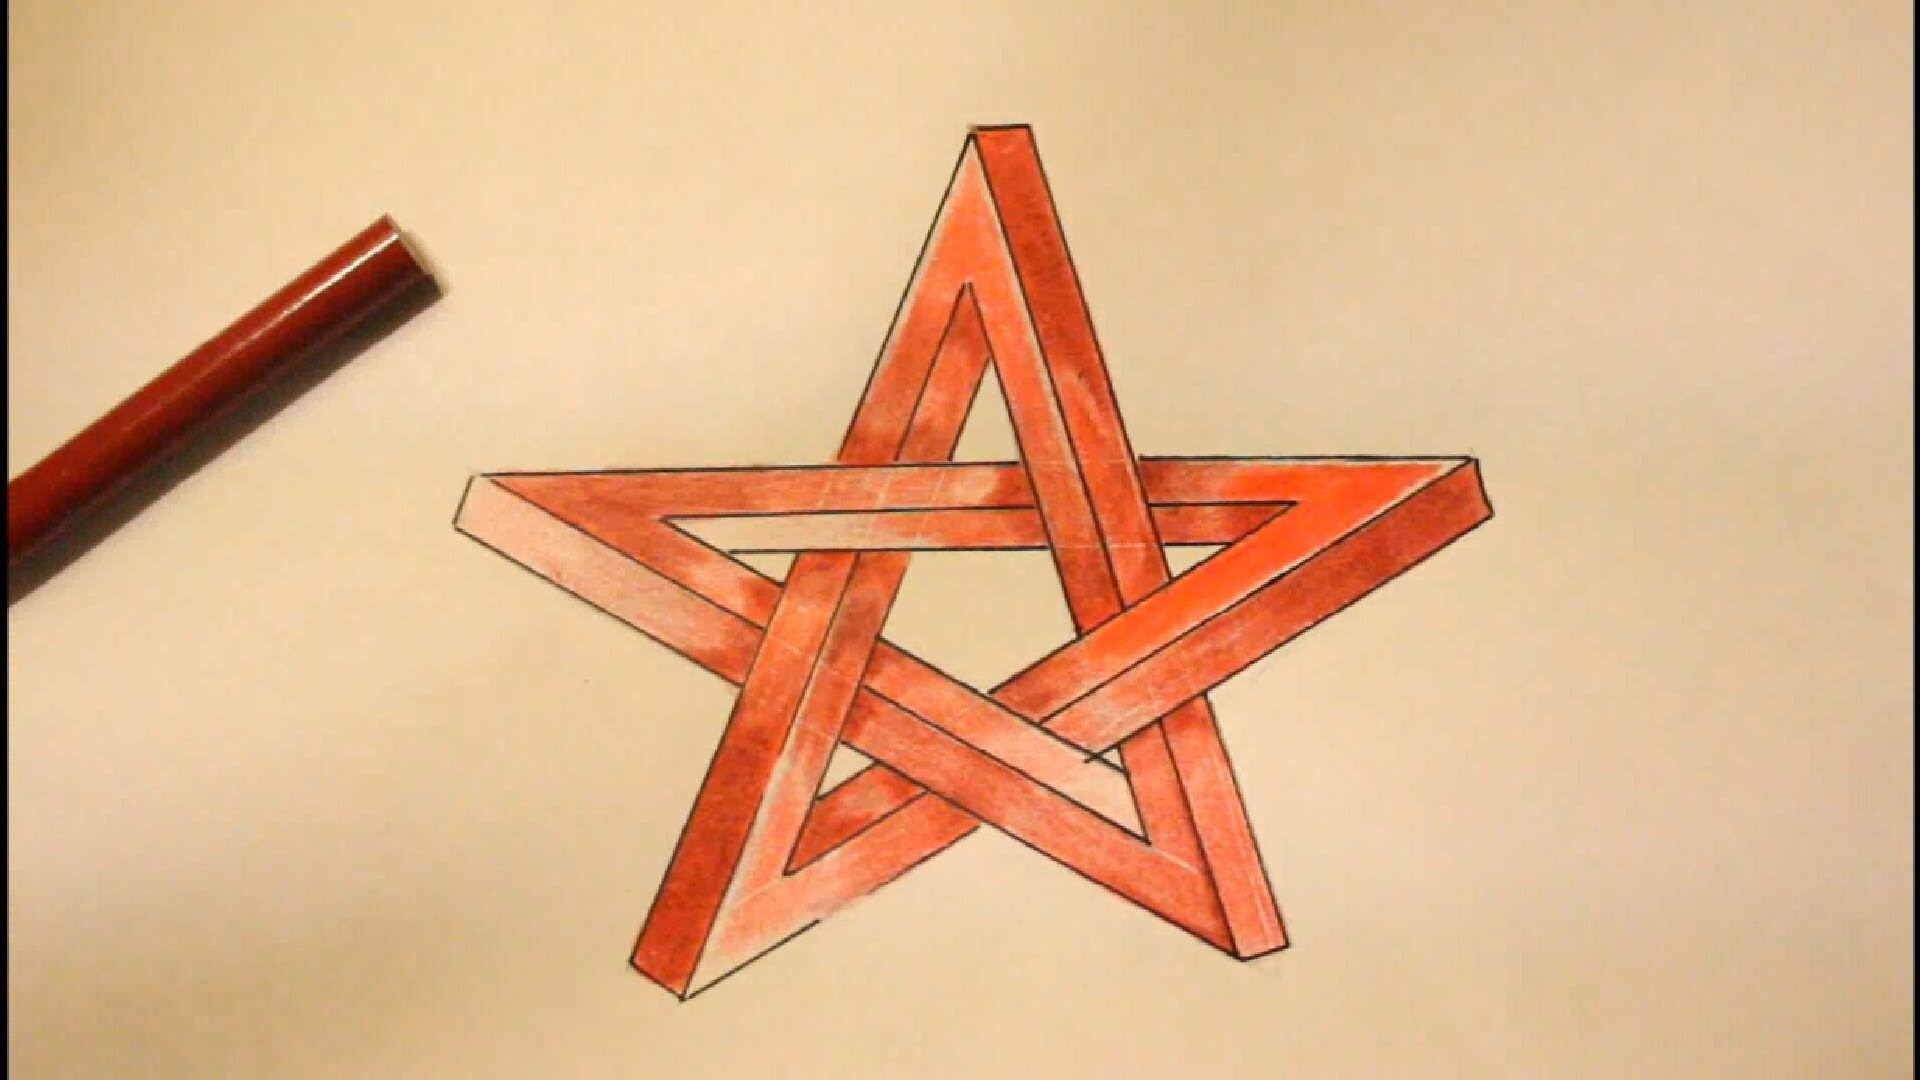 1920x1080 3d Star Shape Drawing On Paper How To Draw An Impossible Star Step